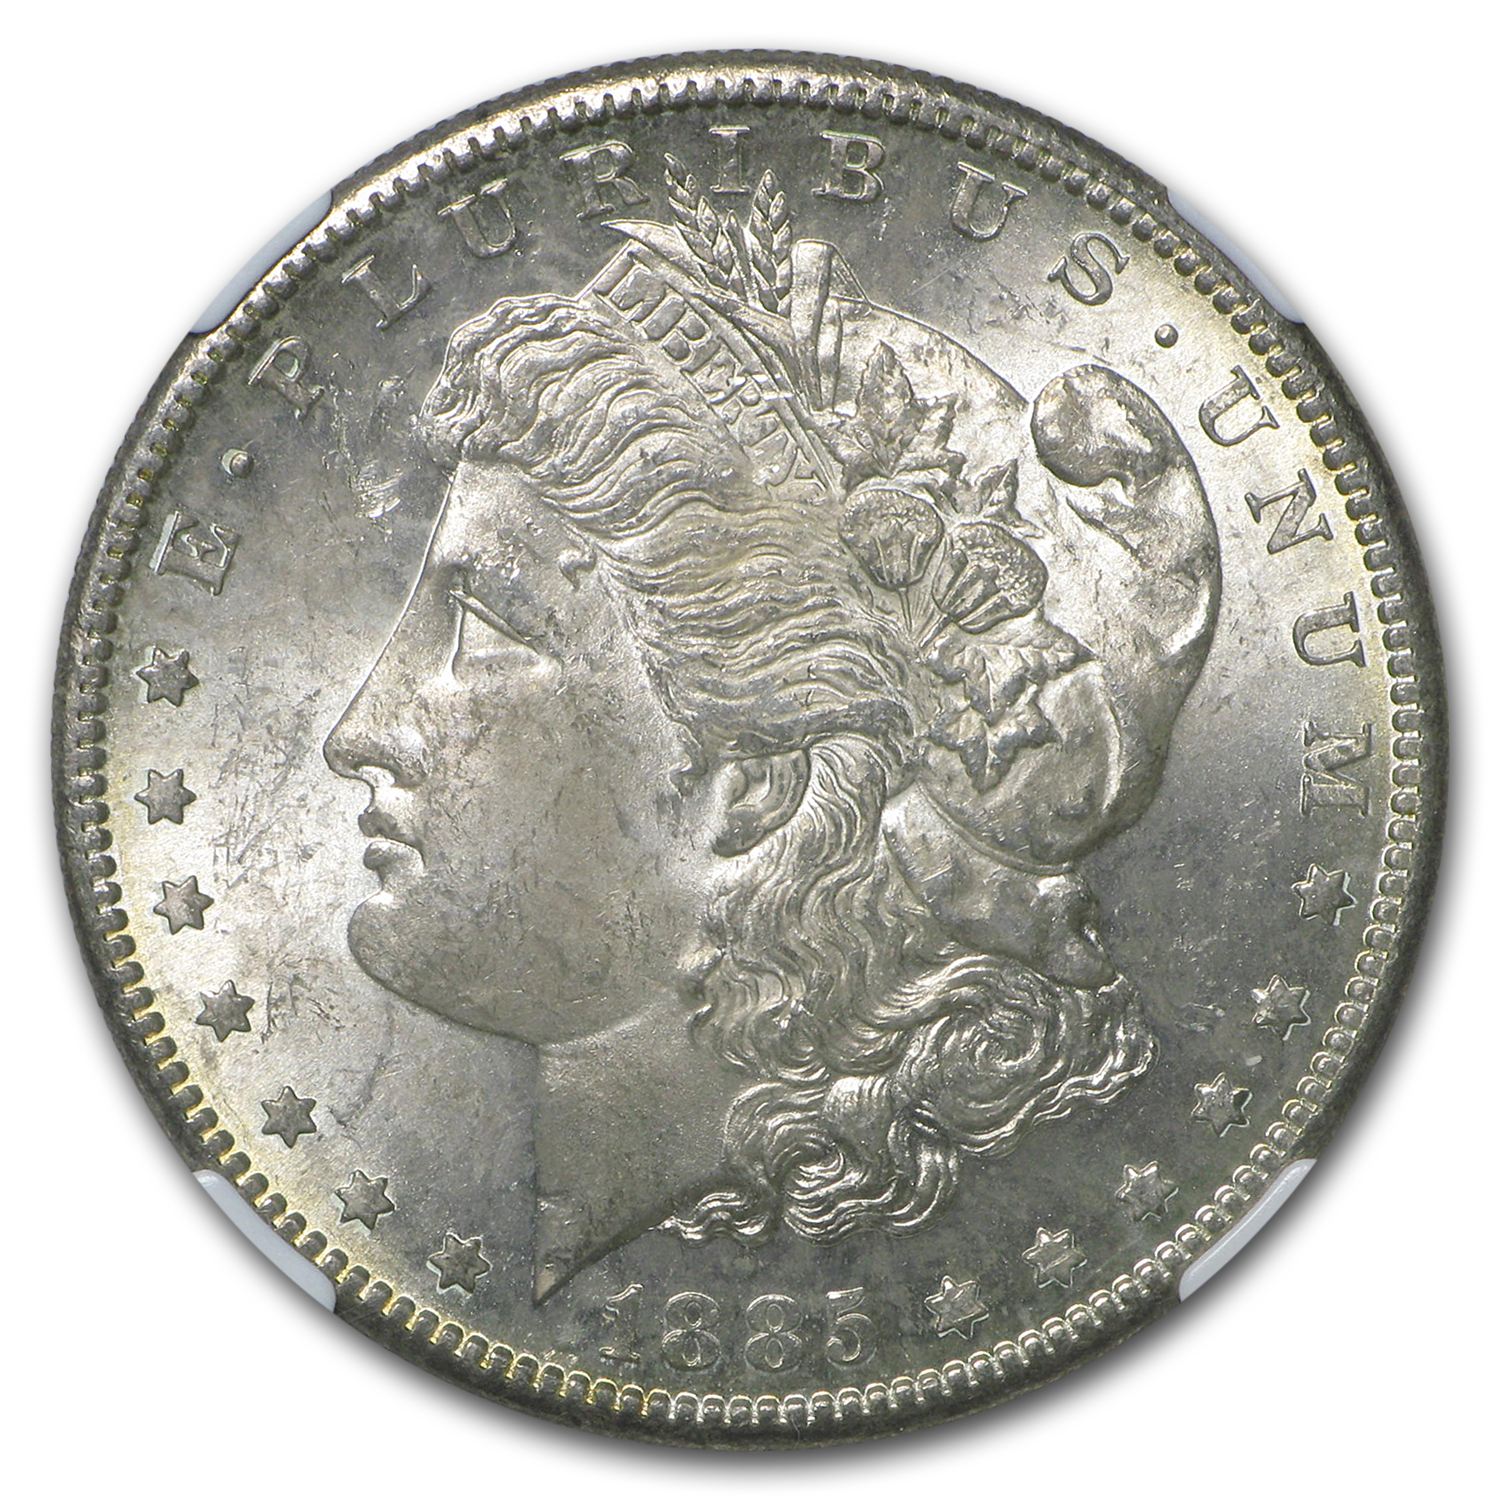 1885-S Morgan Dollar - MS-62 NGC